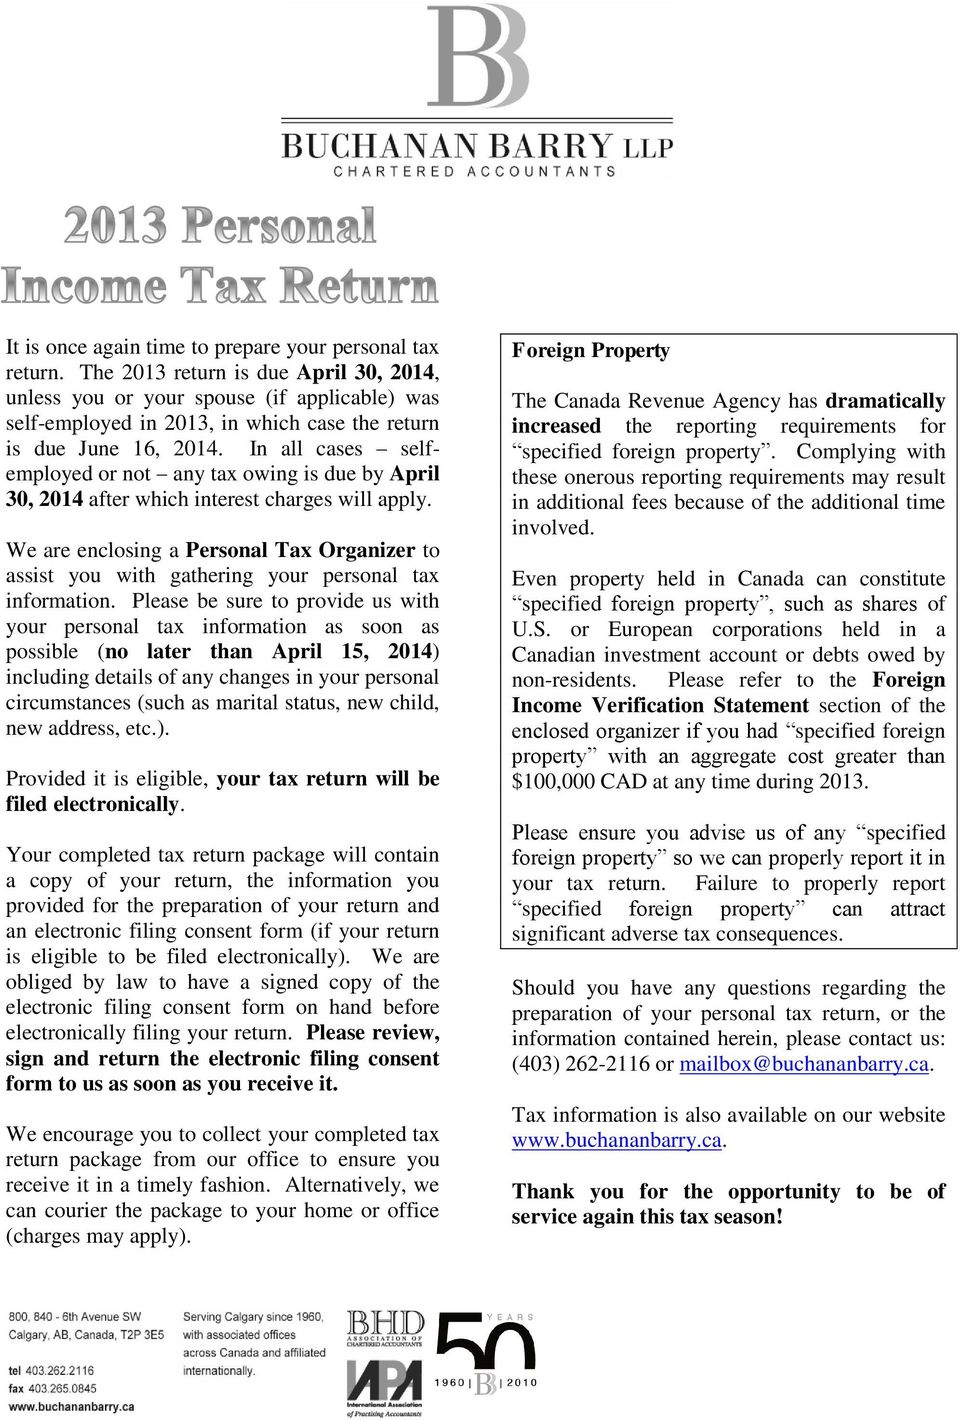 In all cases selfemployed or not any tax owing is due by April 30, 2014 after which interest charges will apply.